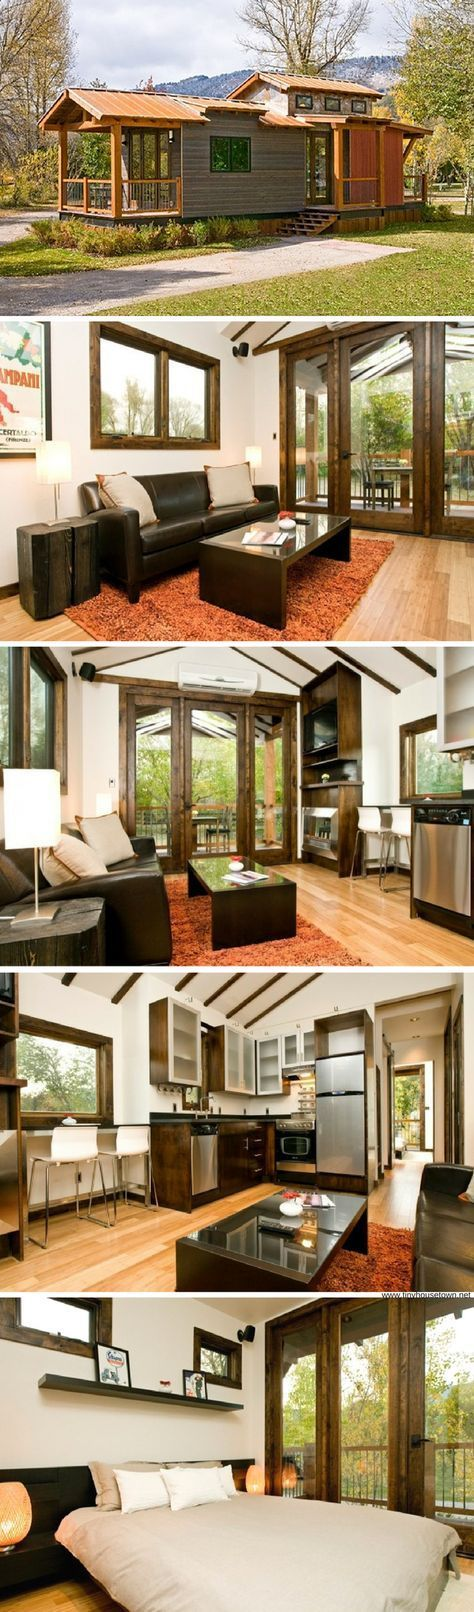 The Caboose 400 Sq. Ft. Cabin by Wheelhaus Tiny house